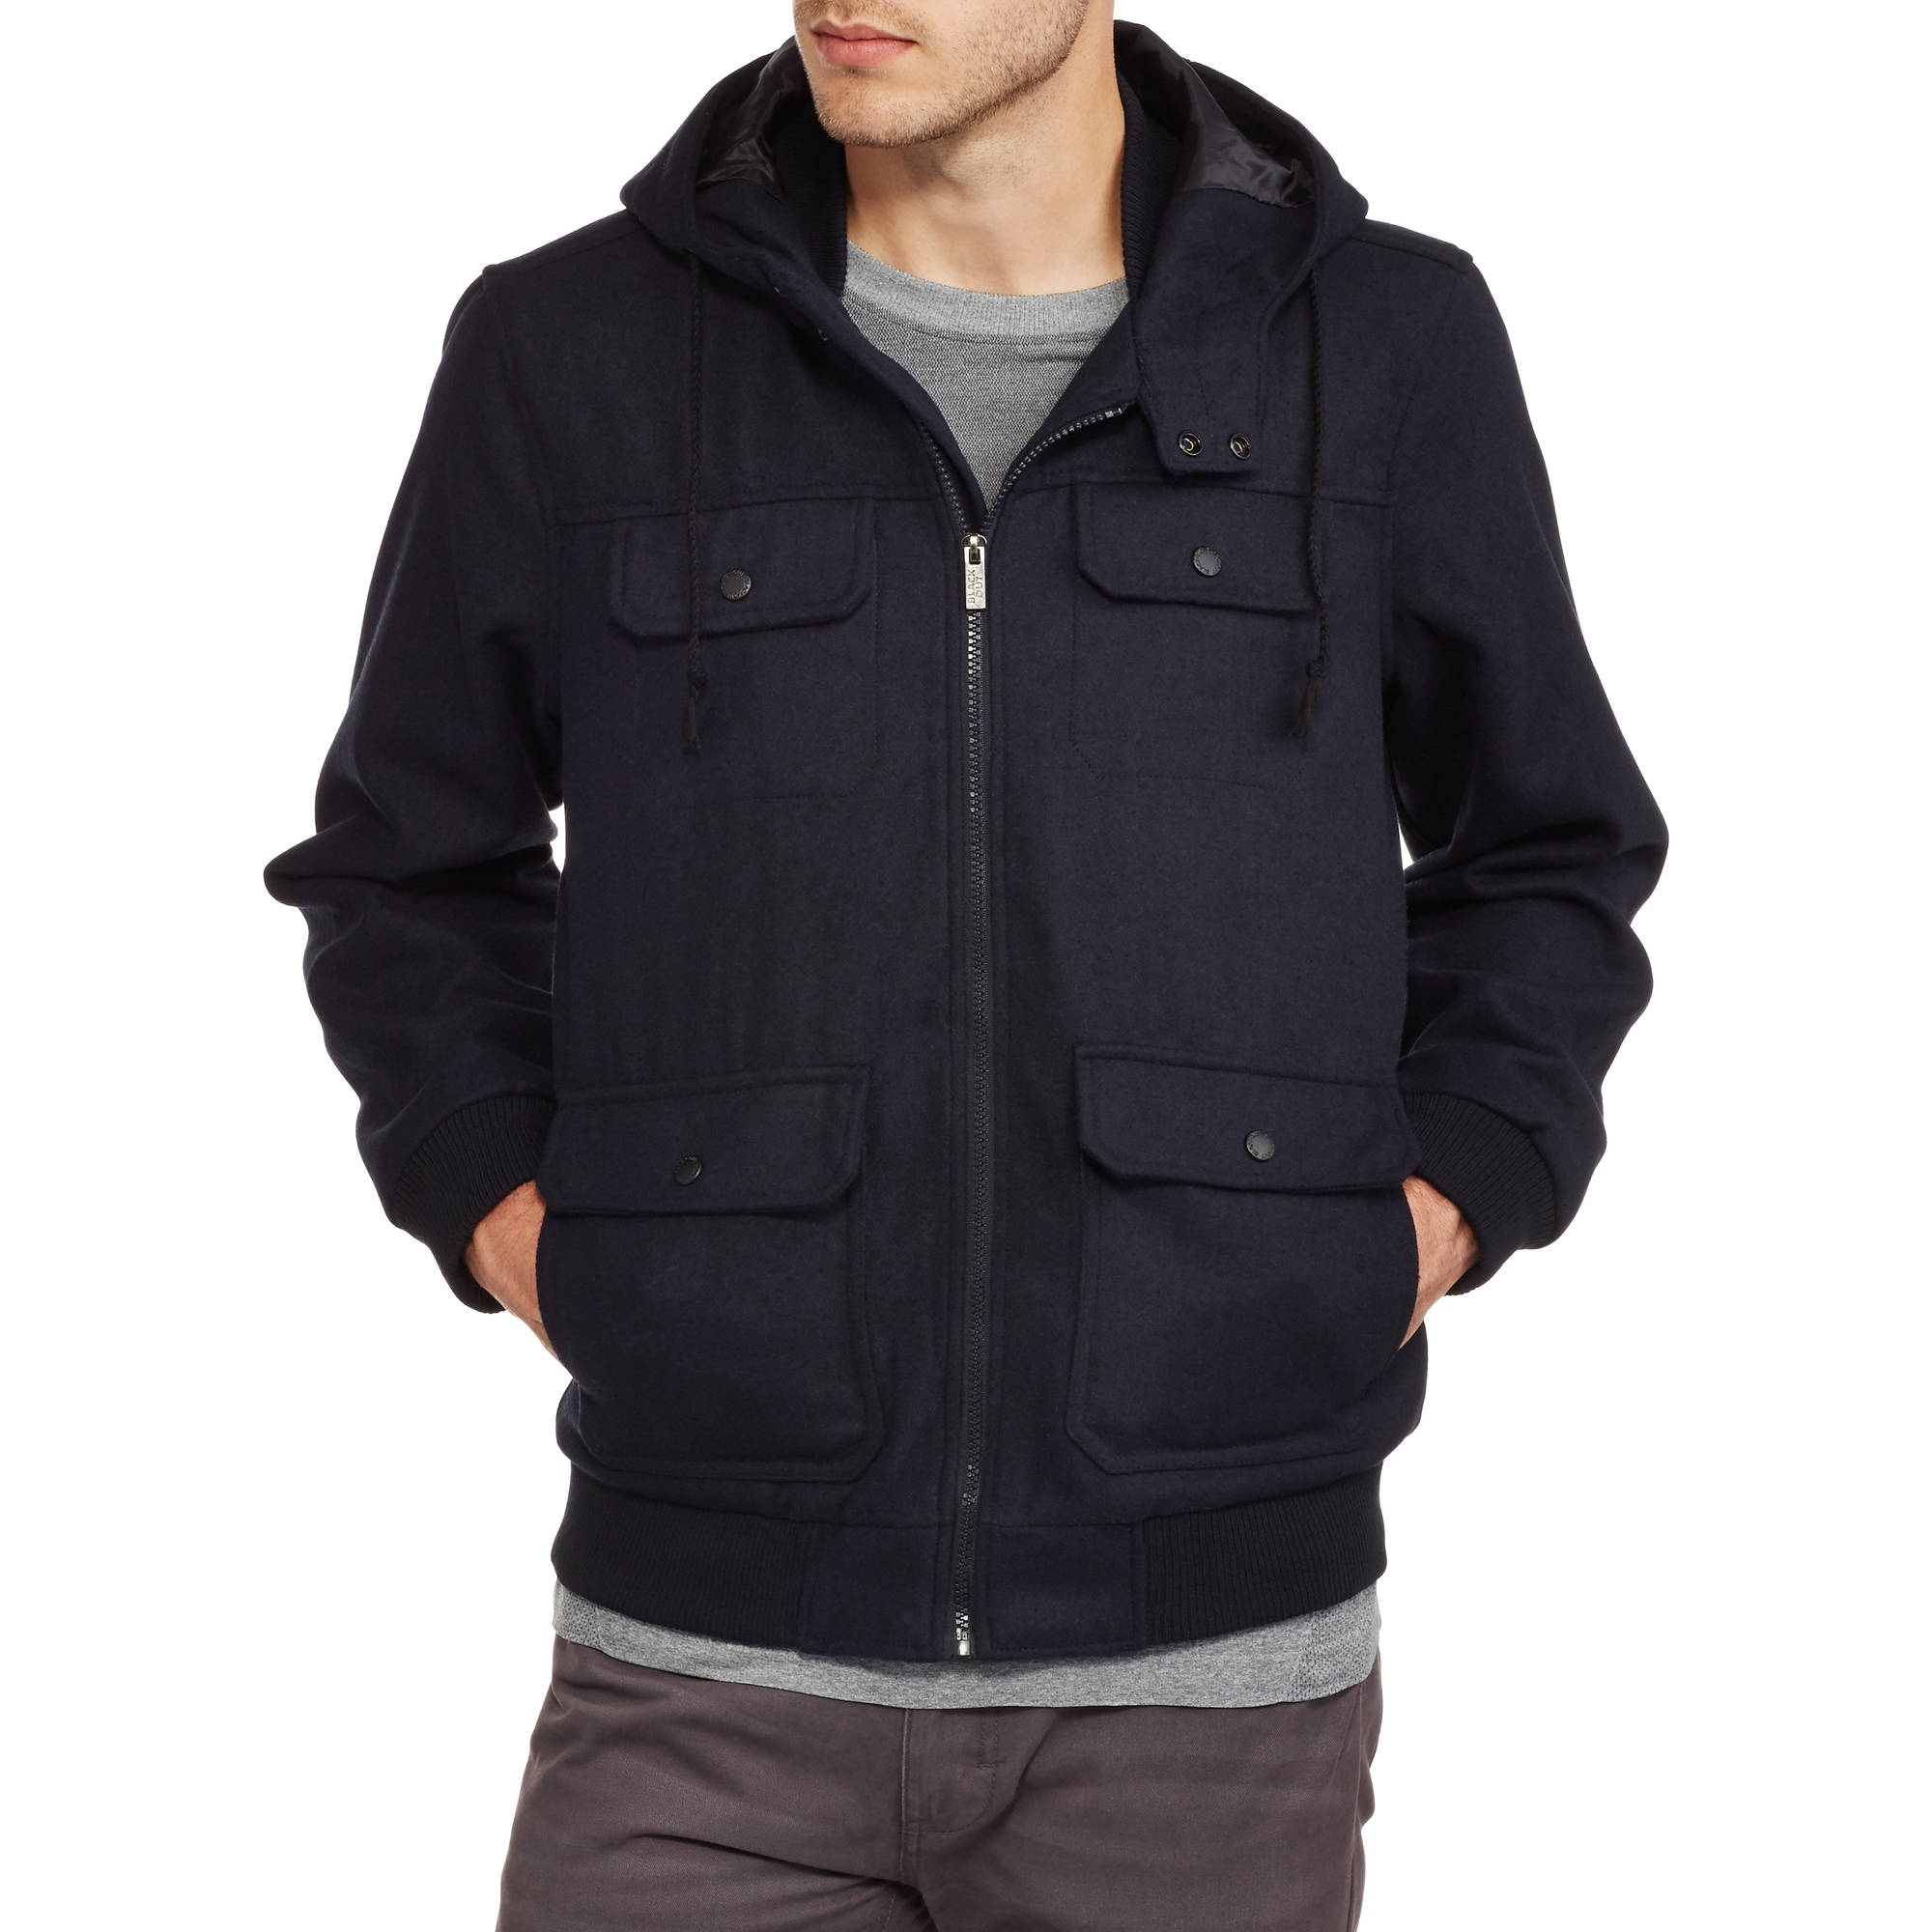 Men's Wool Bomber Jacket with Detachable Drawstring Hood